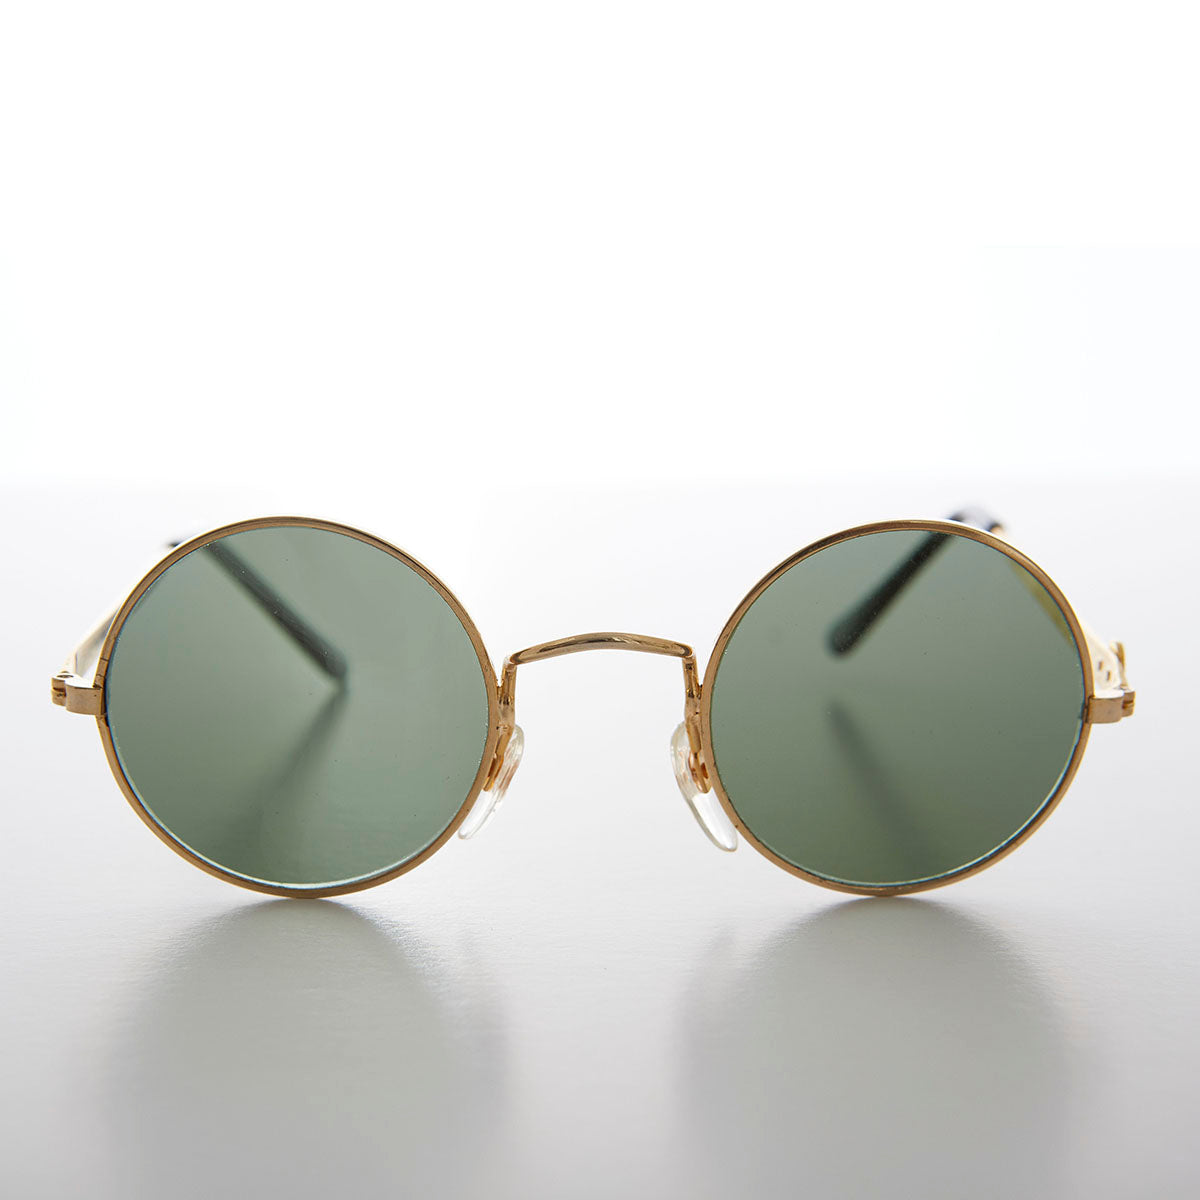 Gold John Lennon Sunglasses with Peace and Glass Lens